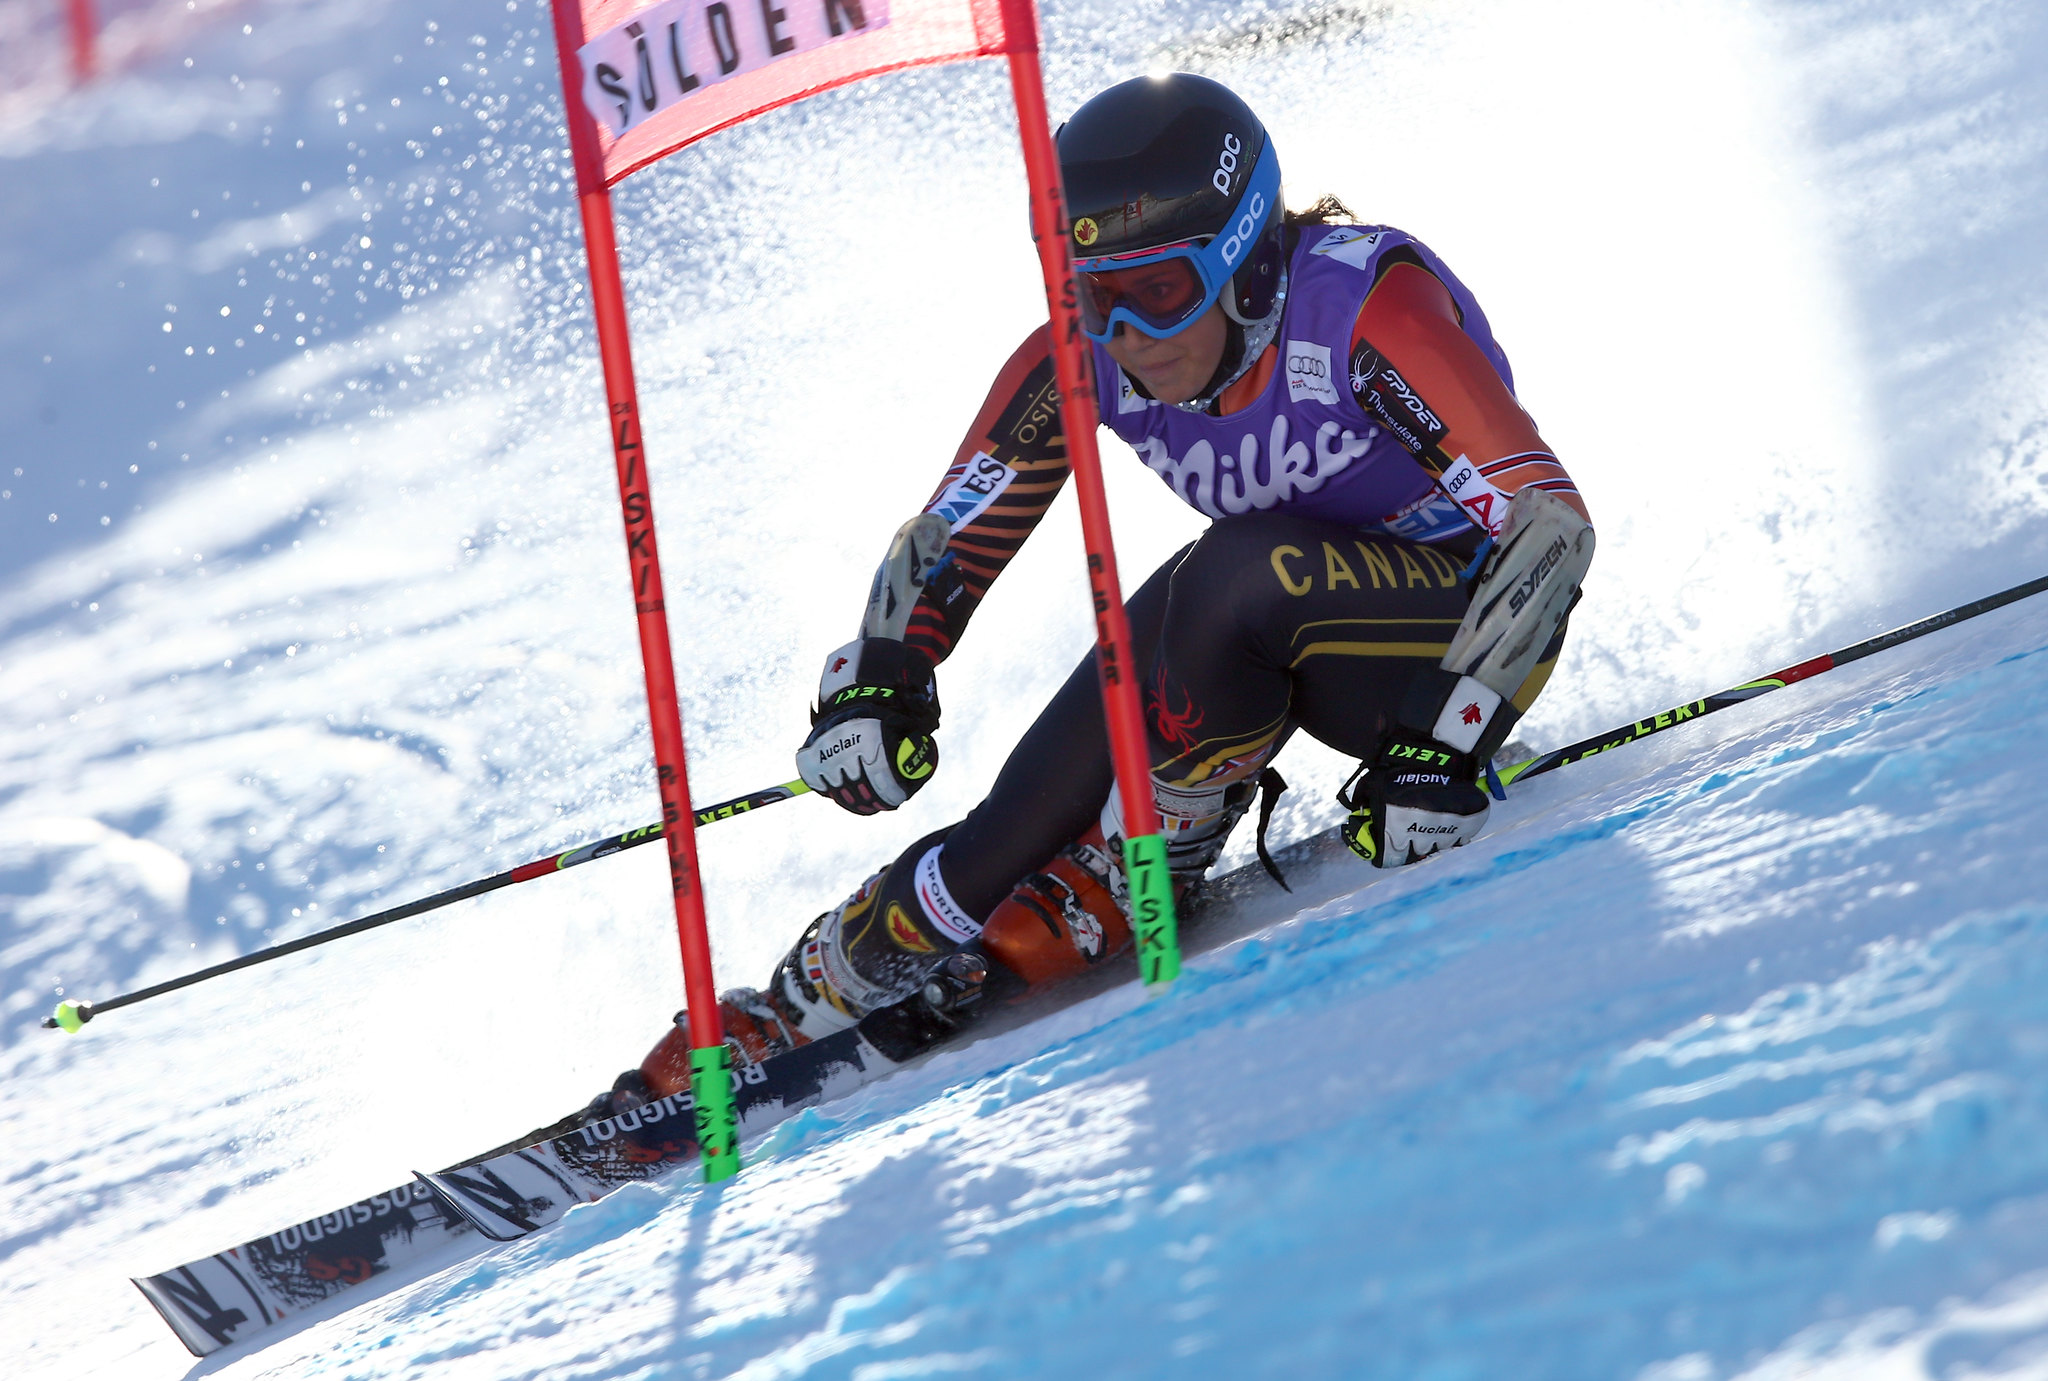 Prefontaine maneuvers a gate in the giant slalom at Solden, AUT